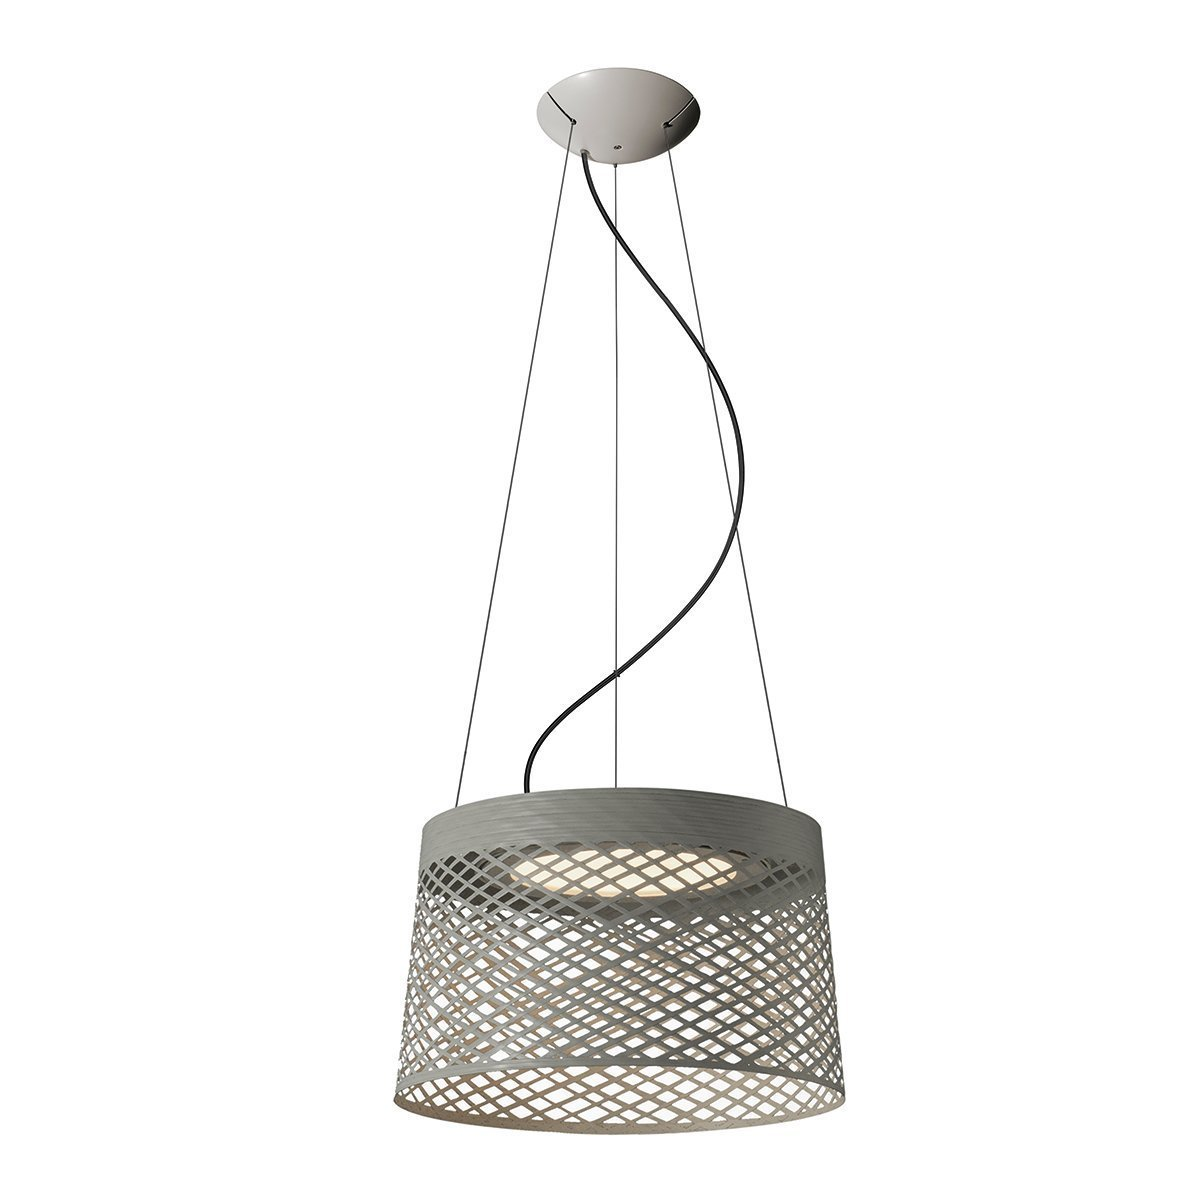 Foscarini Twiggy Grid Outdoor Hanglamp - Marc Sadler